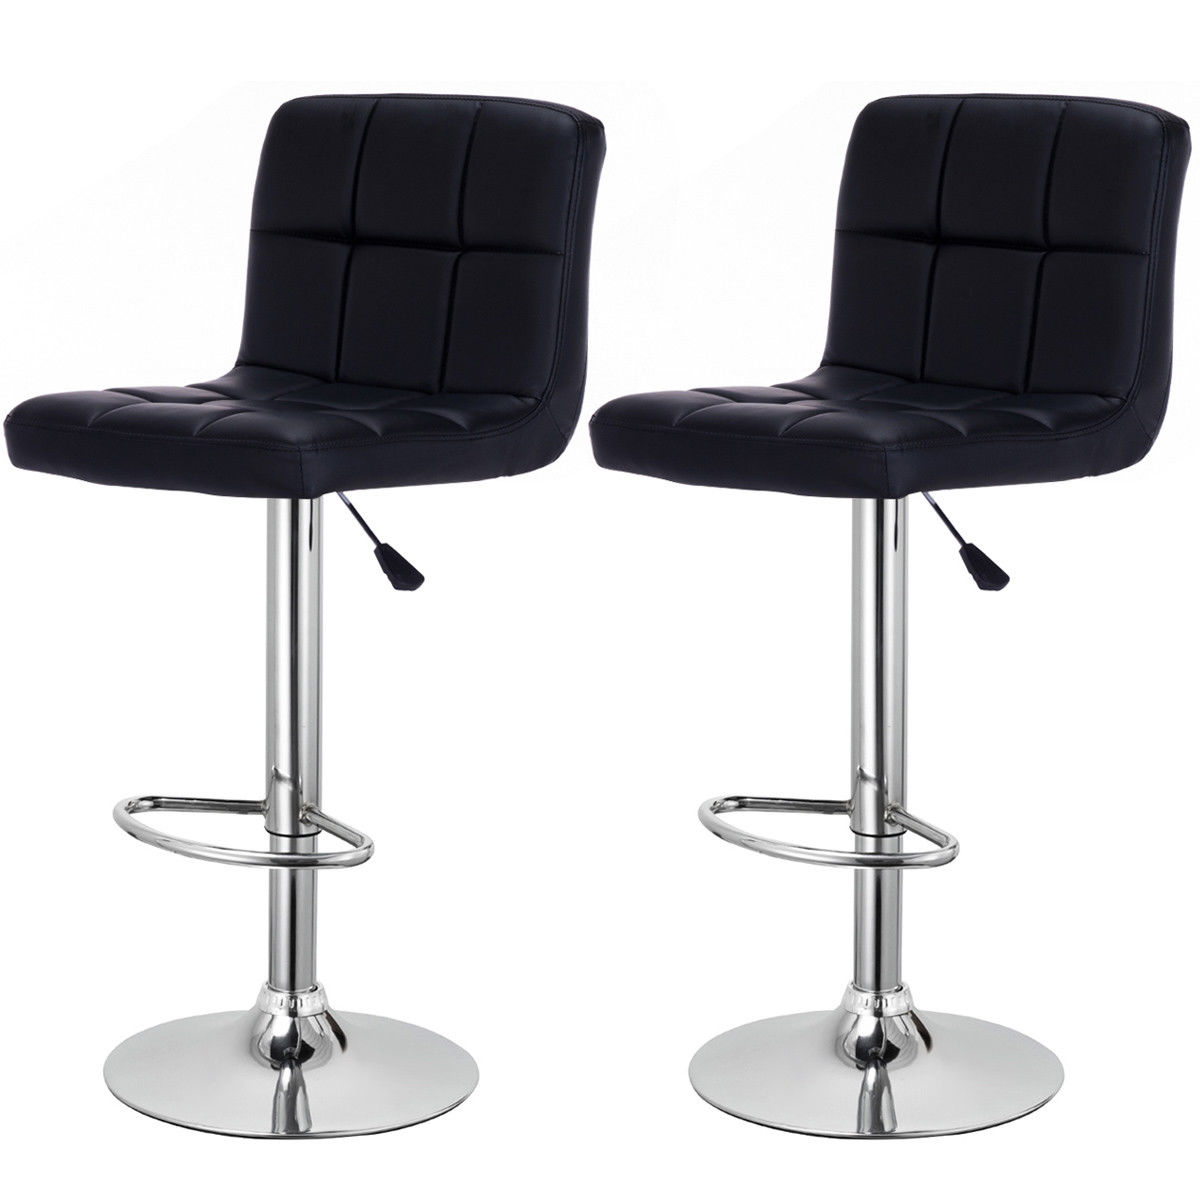 Zimtown Set Of 2 Adjustable Swivel Bar Stools PU Leather Pub Chairs